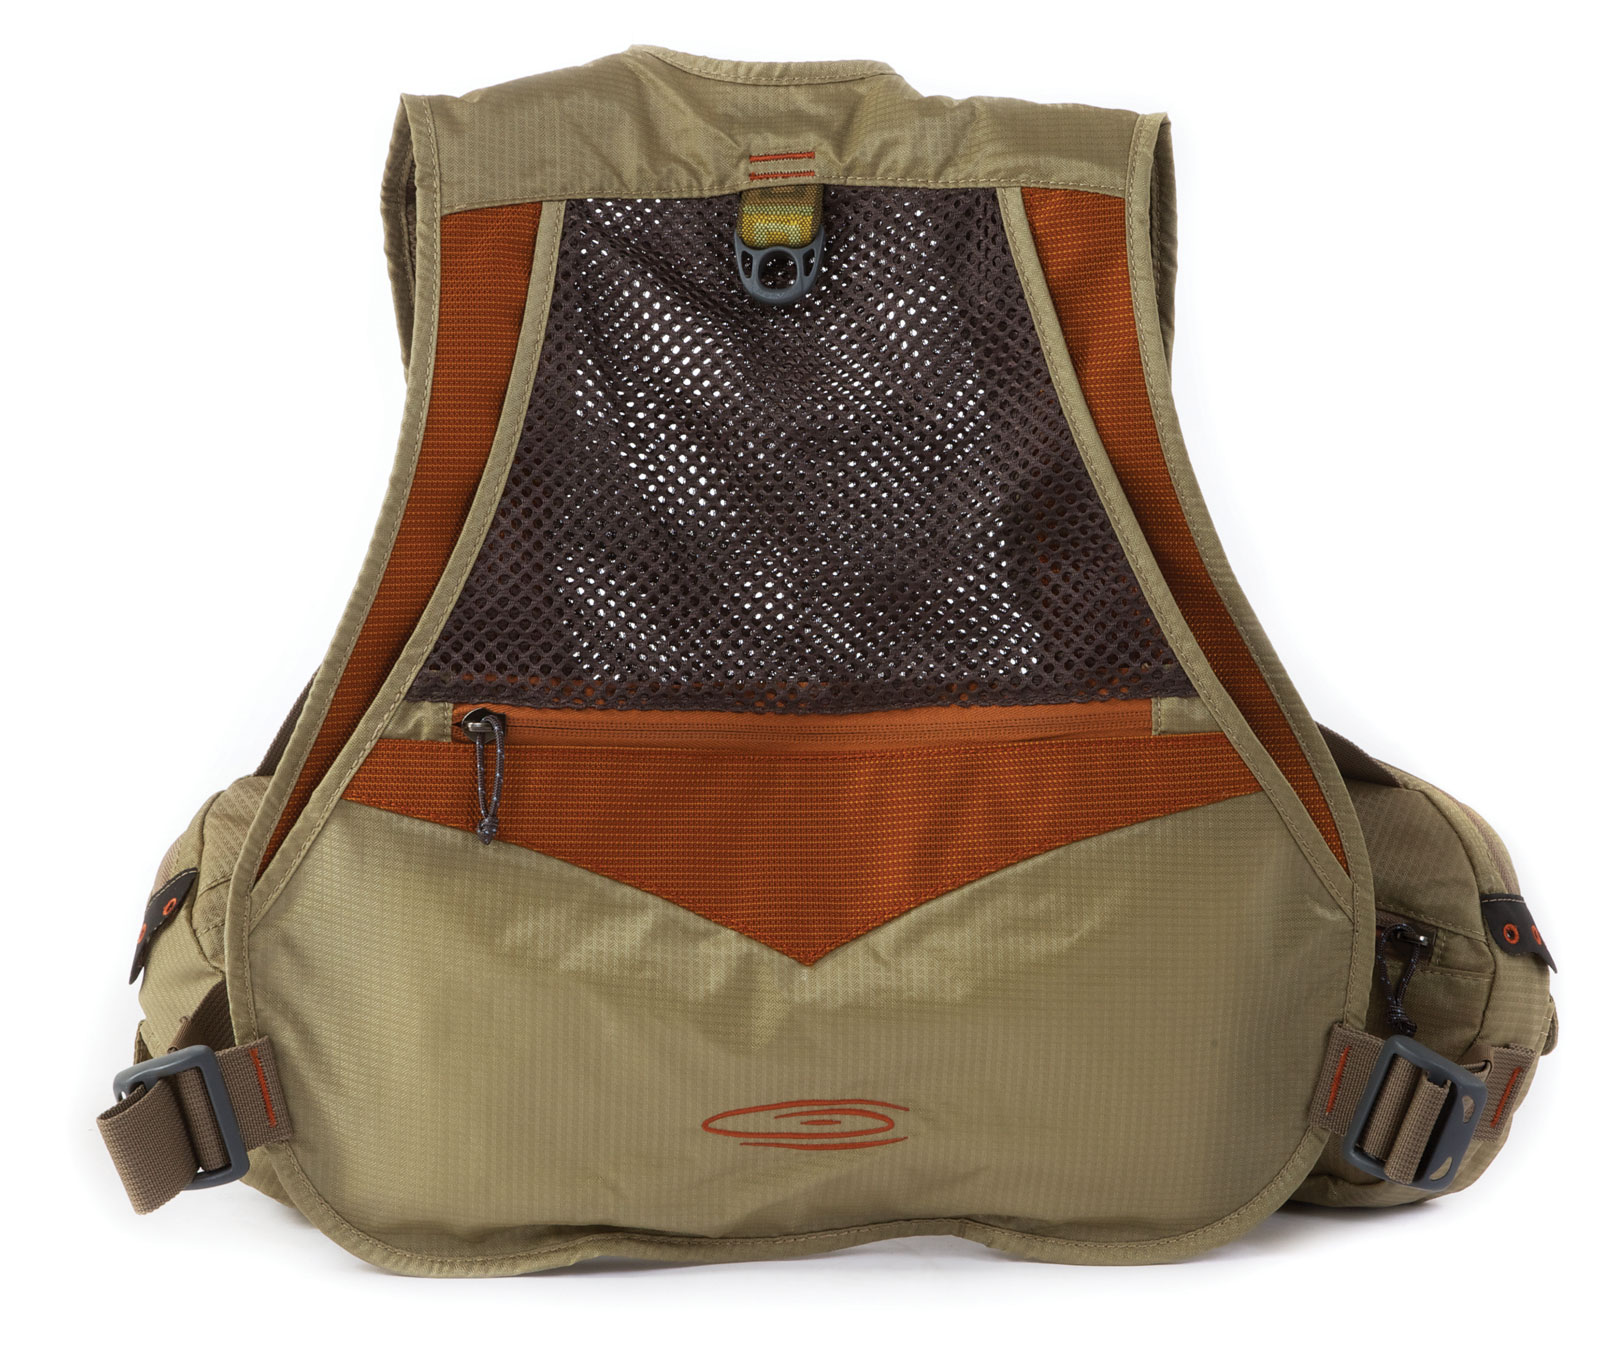 Fishpond vaquero tech pack fly fishing vest one size fits all for Fishpond fly fishing